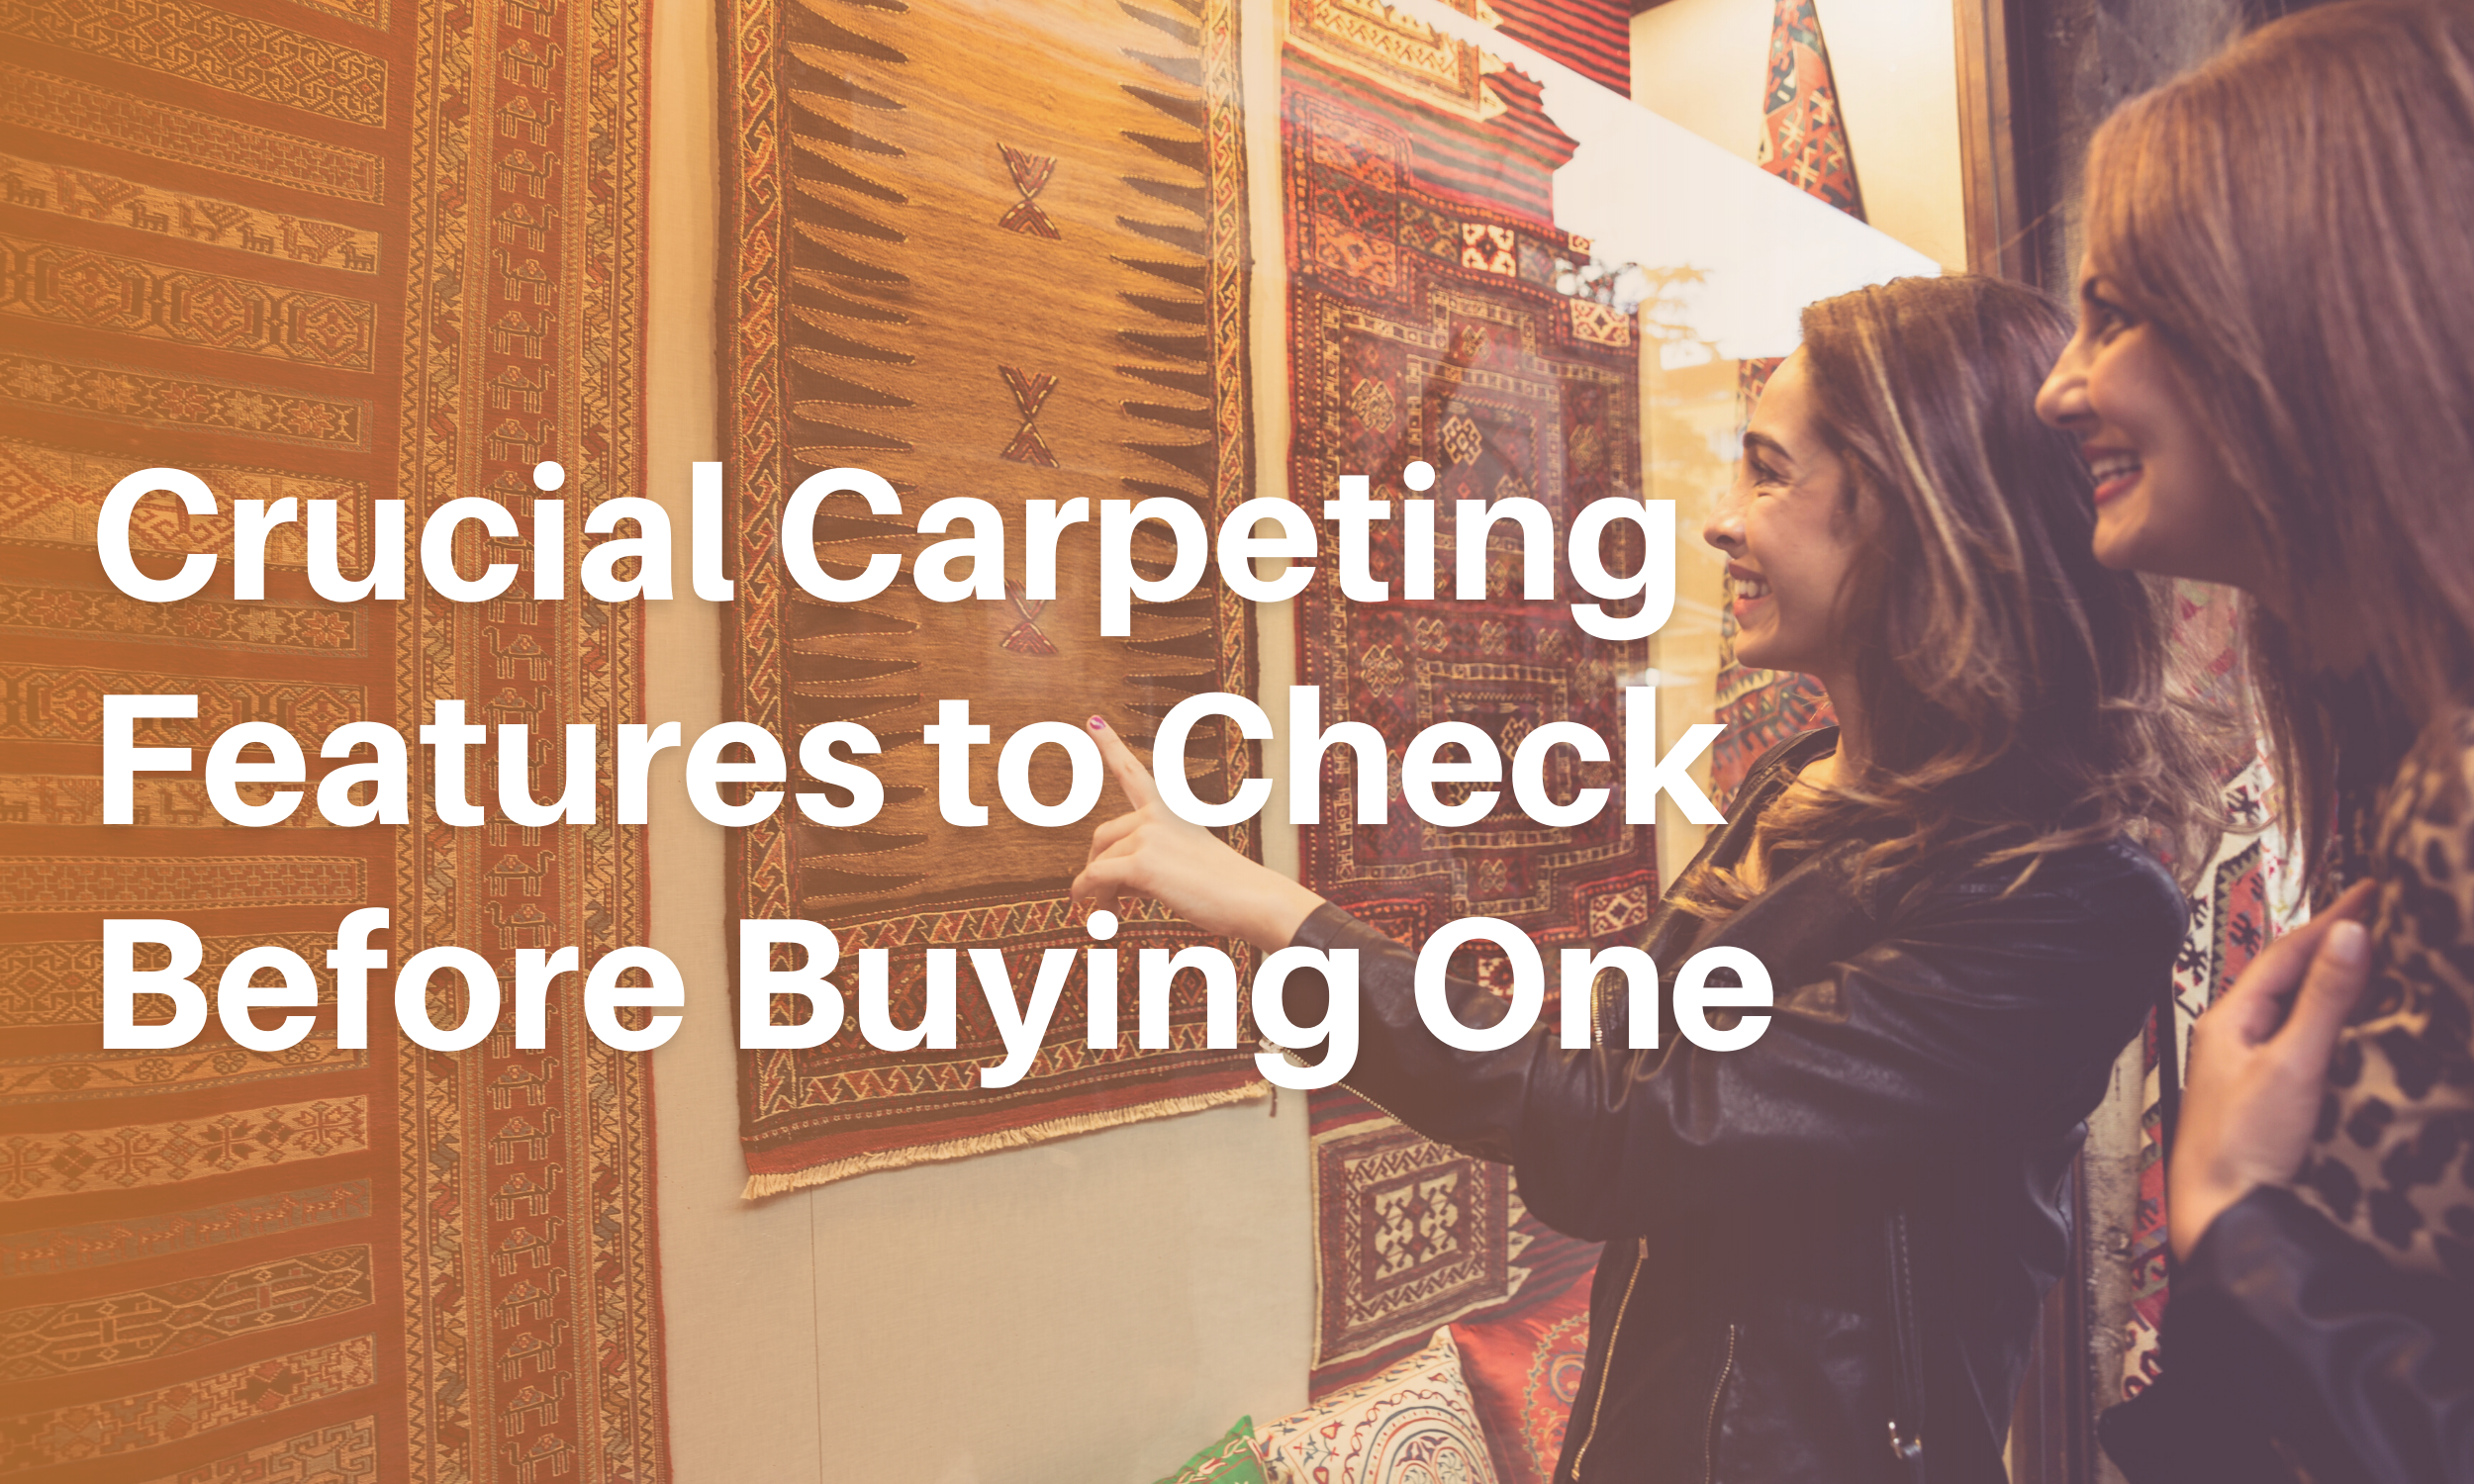 Crucial-Carpeting-Features-to-Check-Before-Buying-One